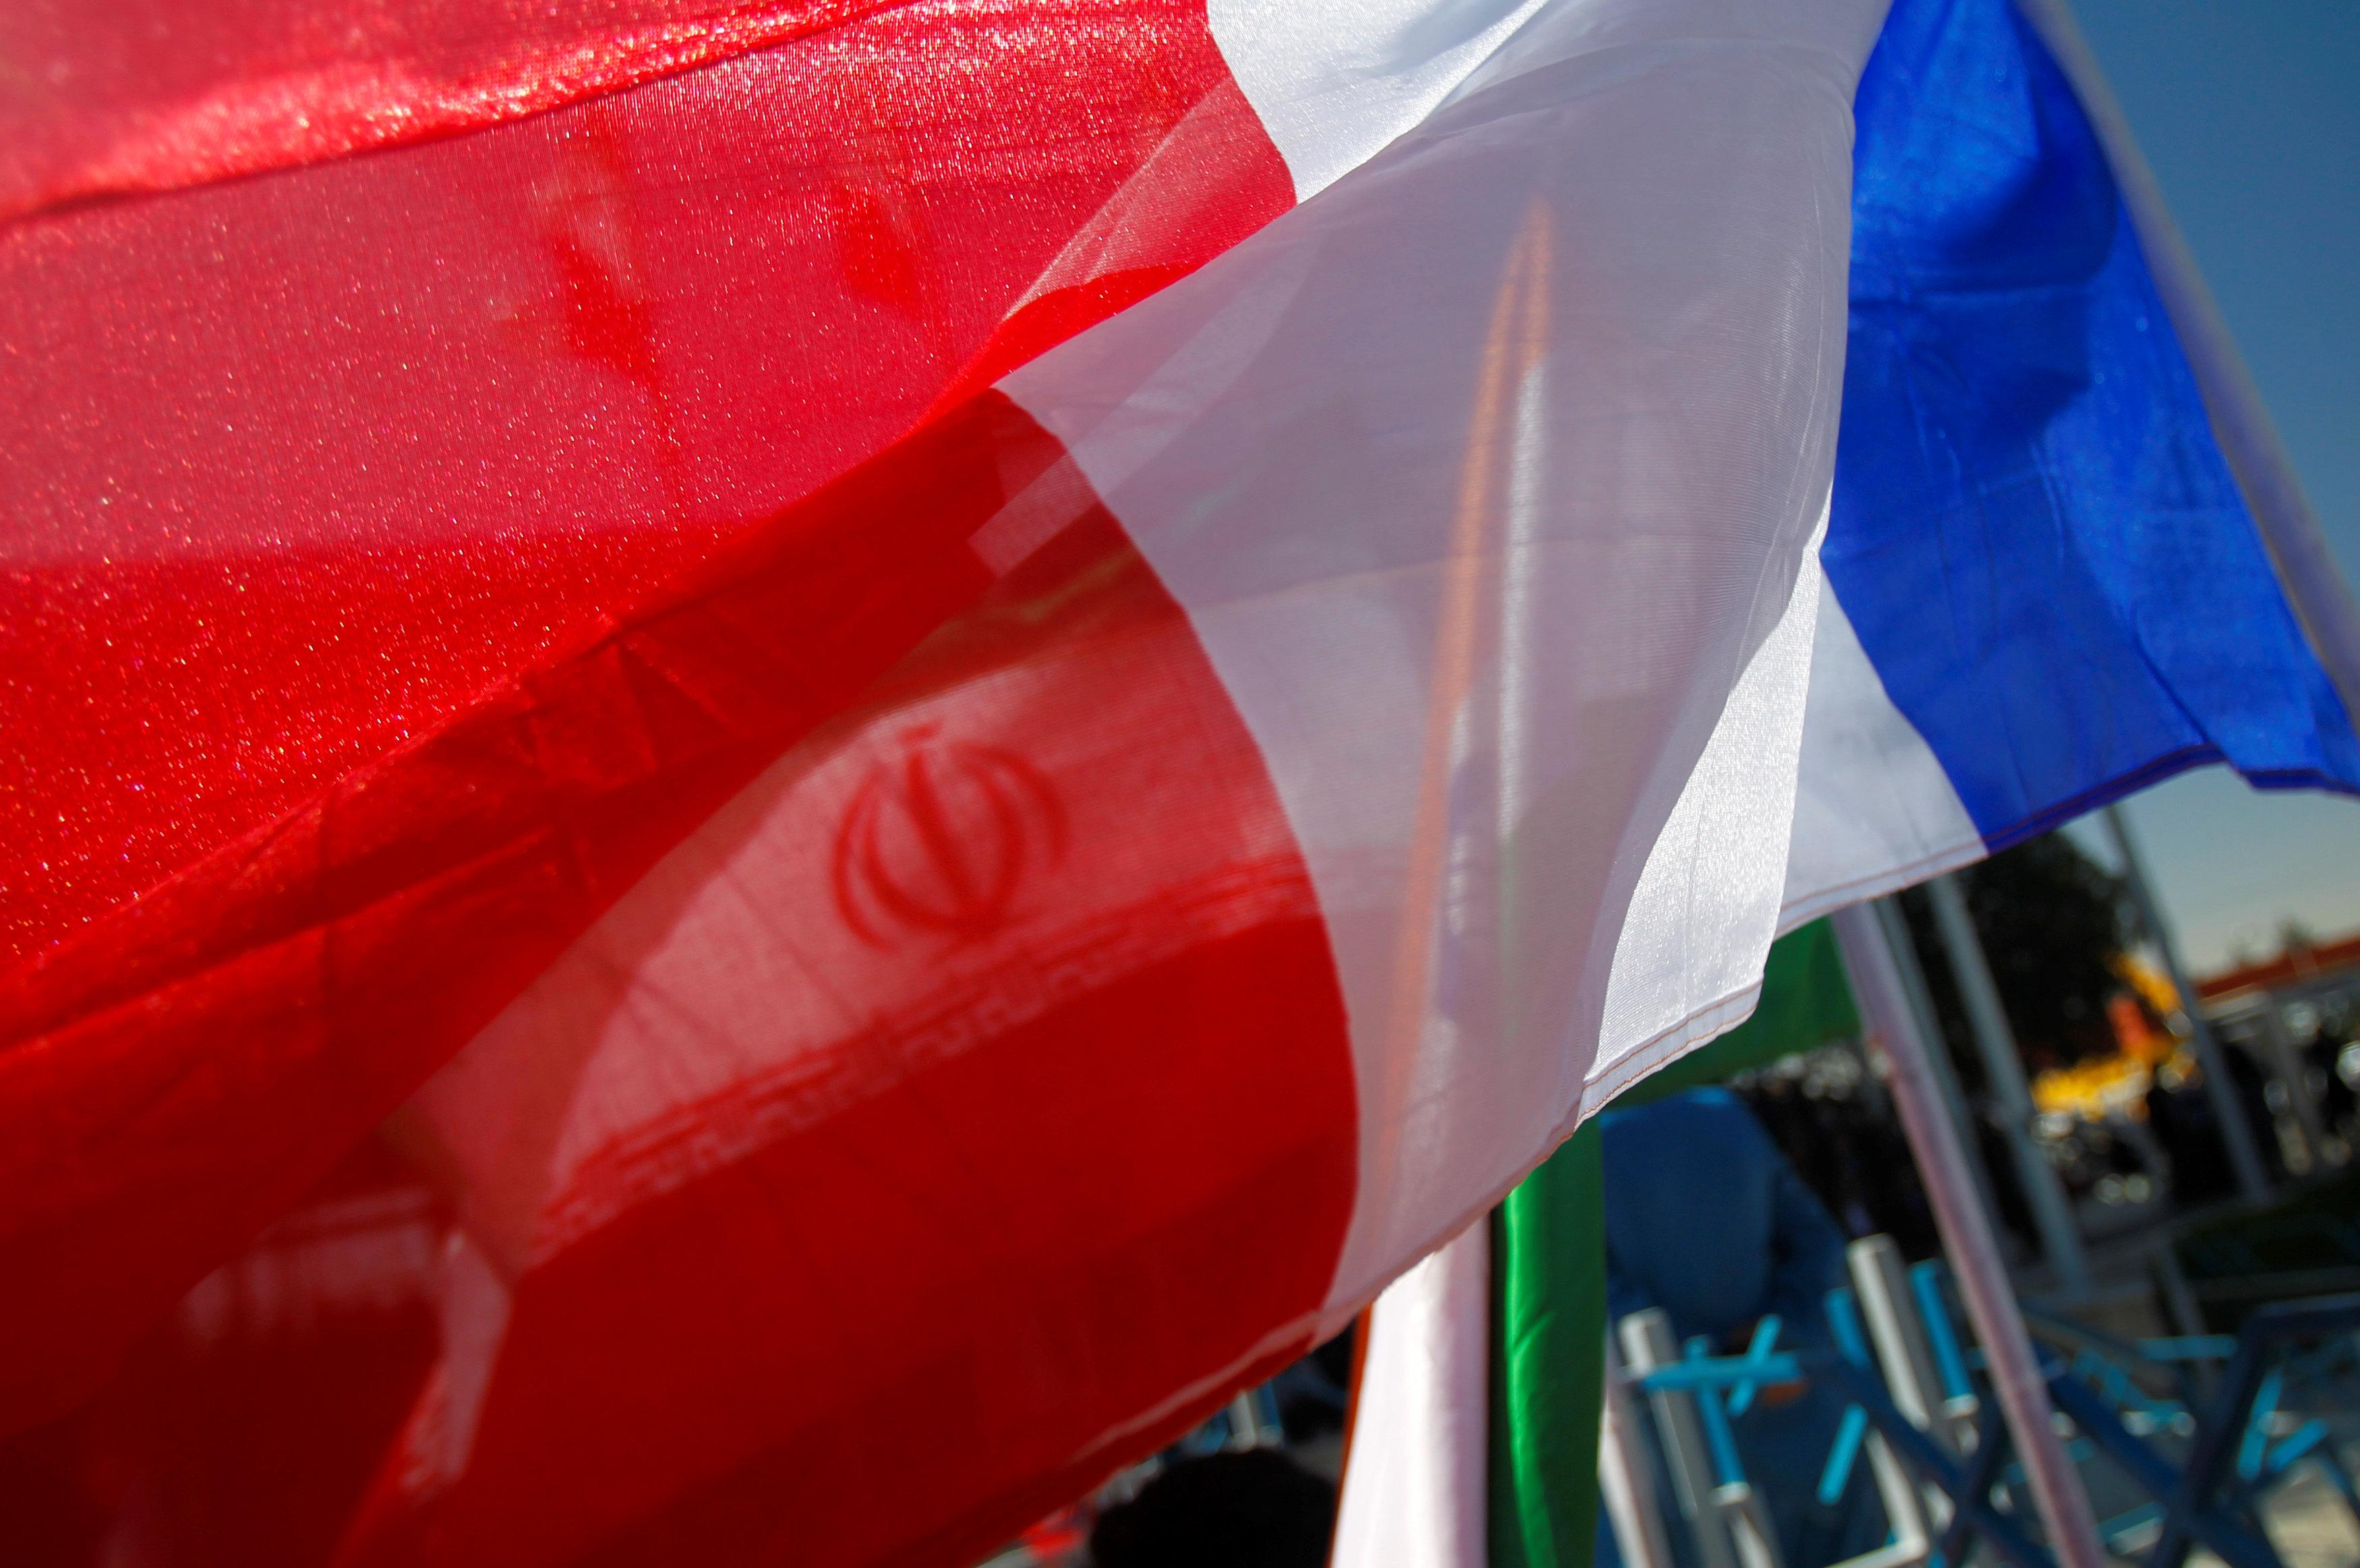 France holds off on Iran envoy nomination after Paris bomb plot